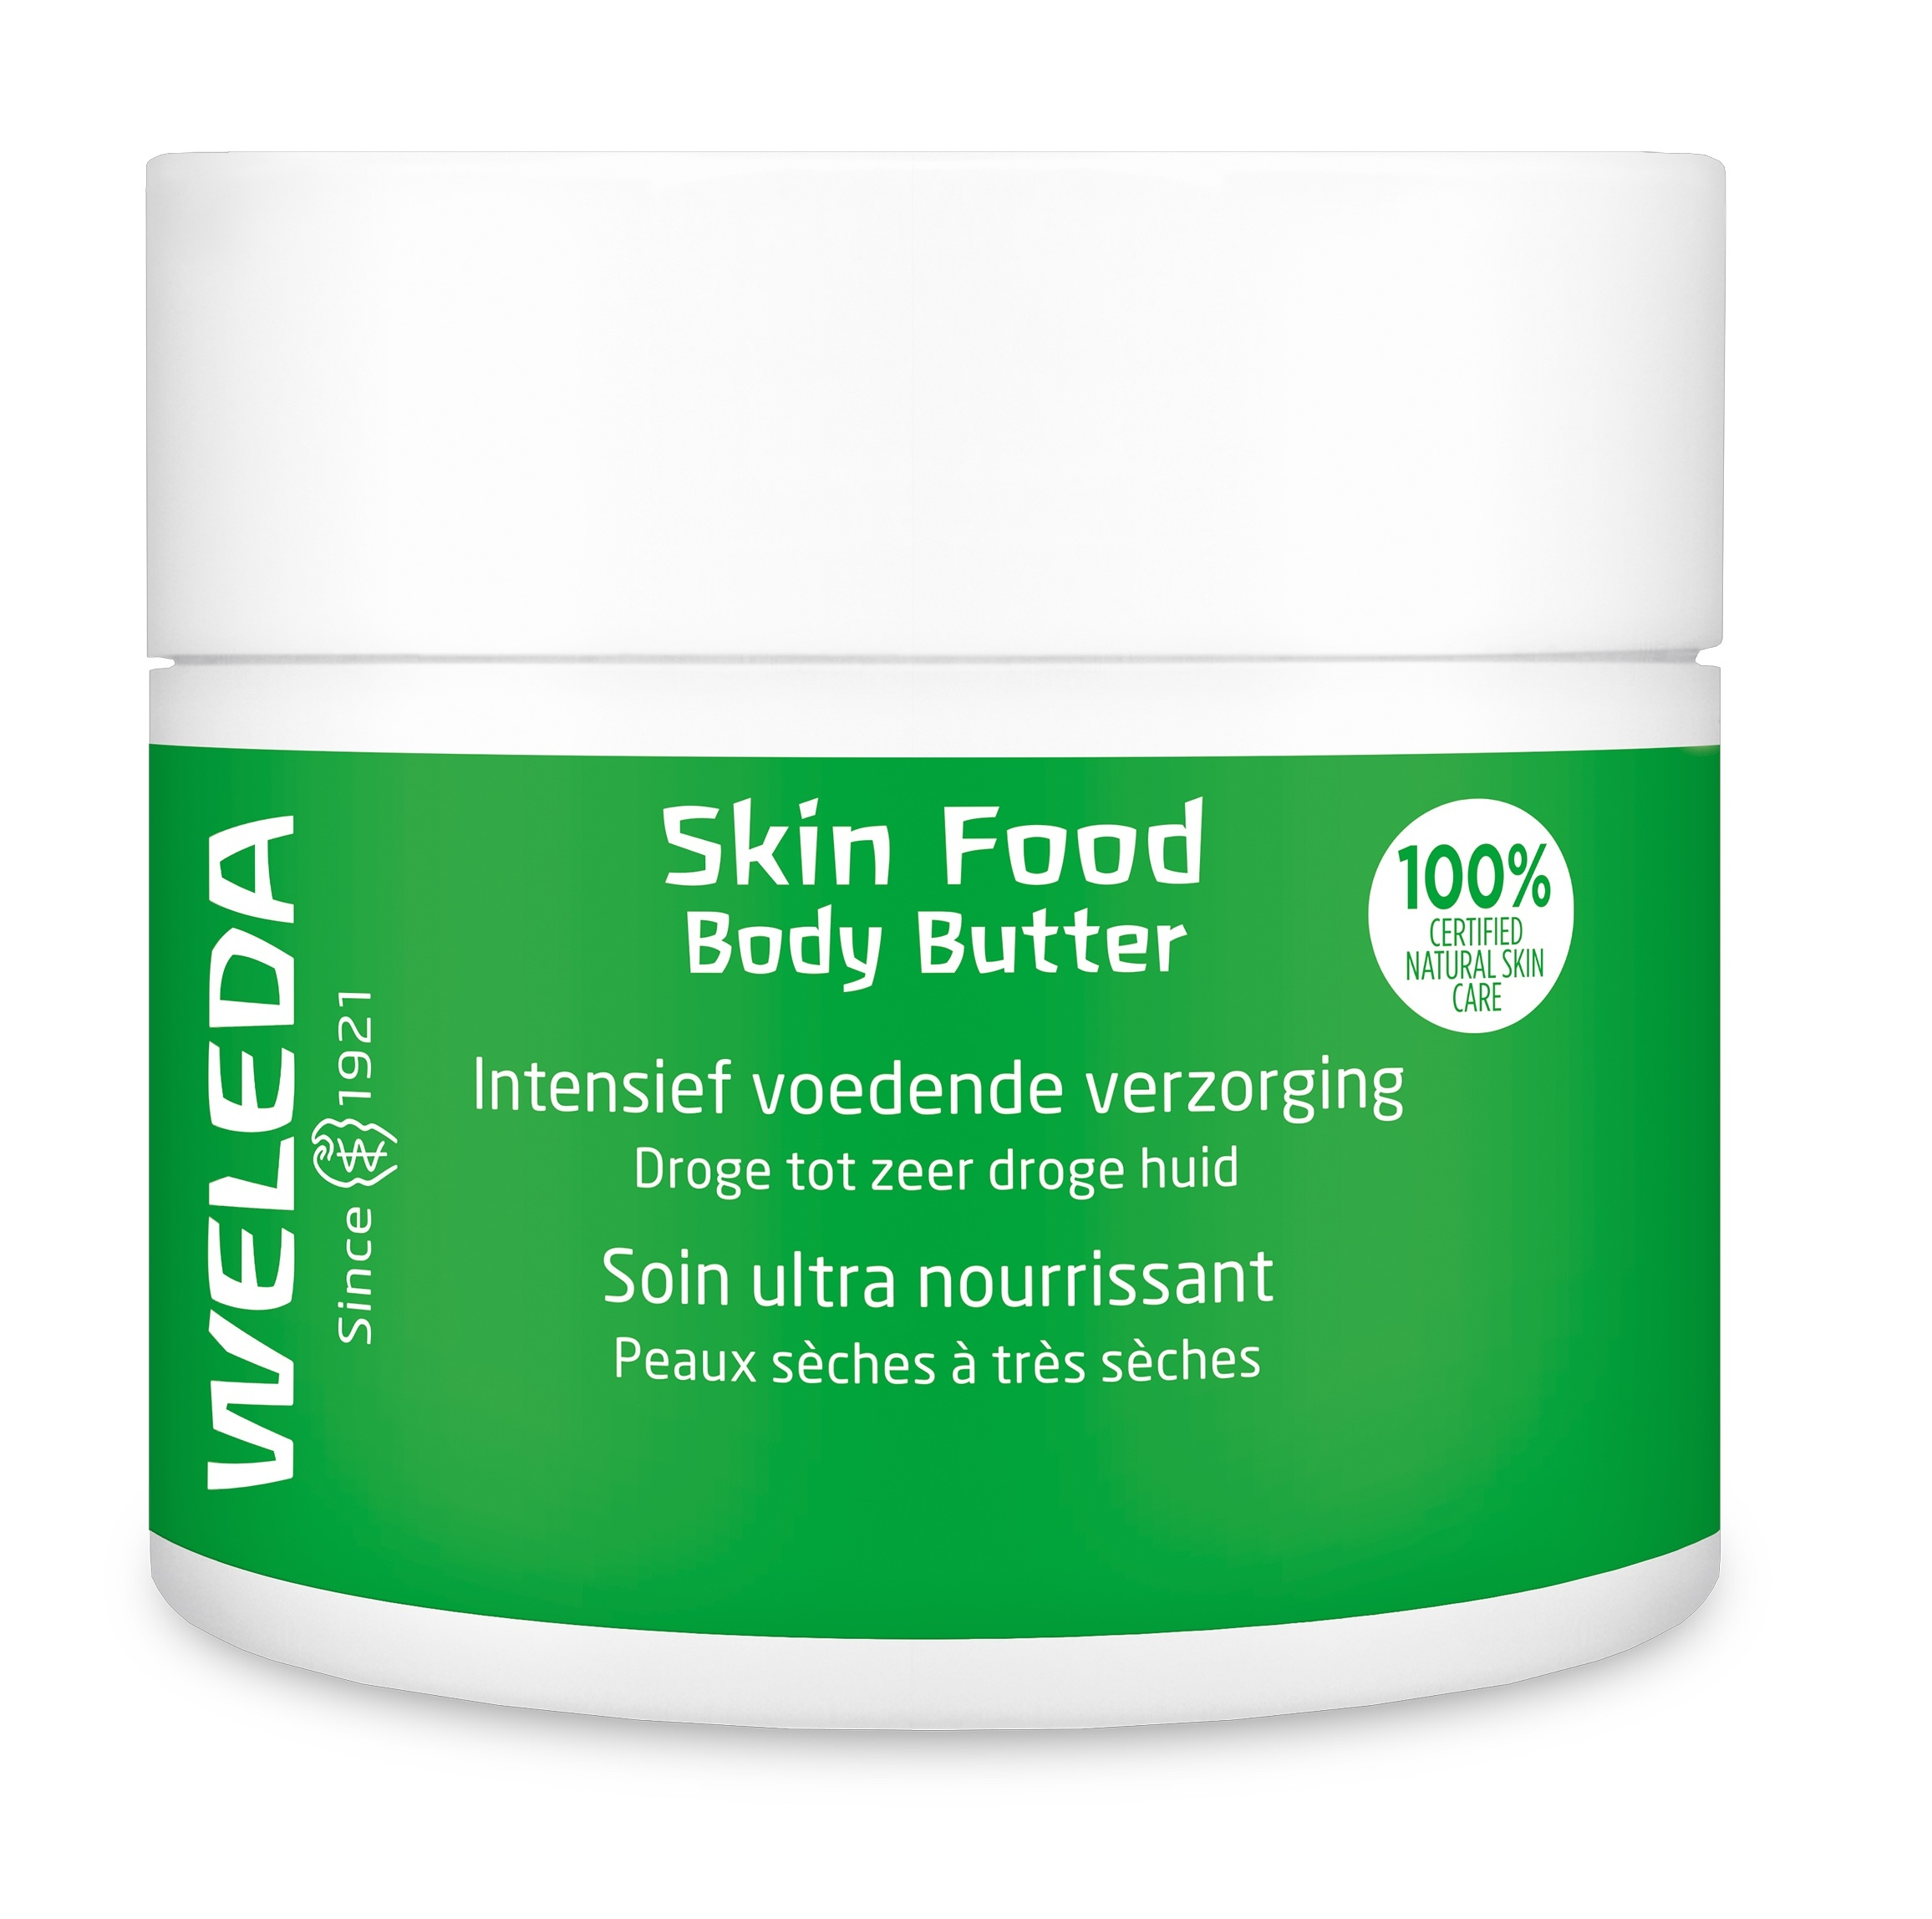 SkinFoodBodyButter 150ml EUR13.99 - WELEDA WINTER MUSTHAVES